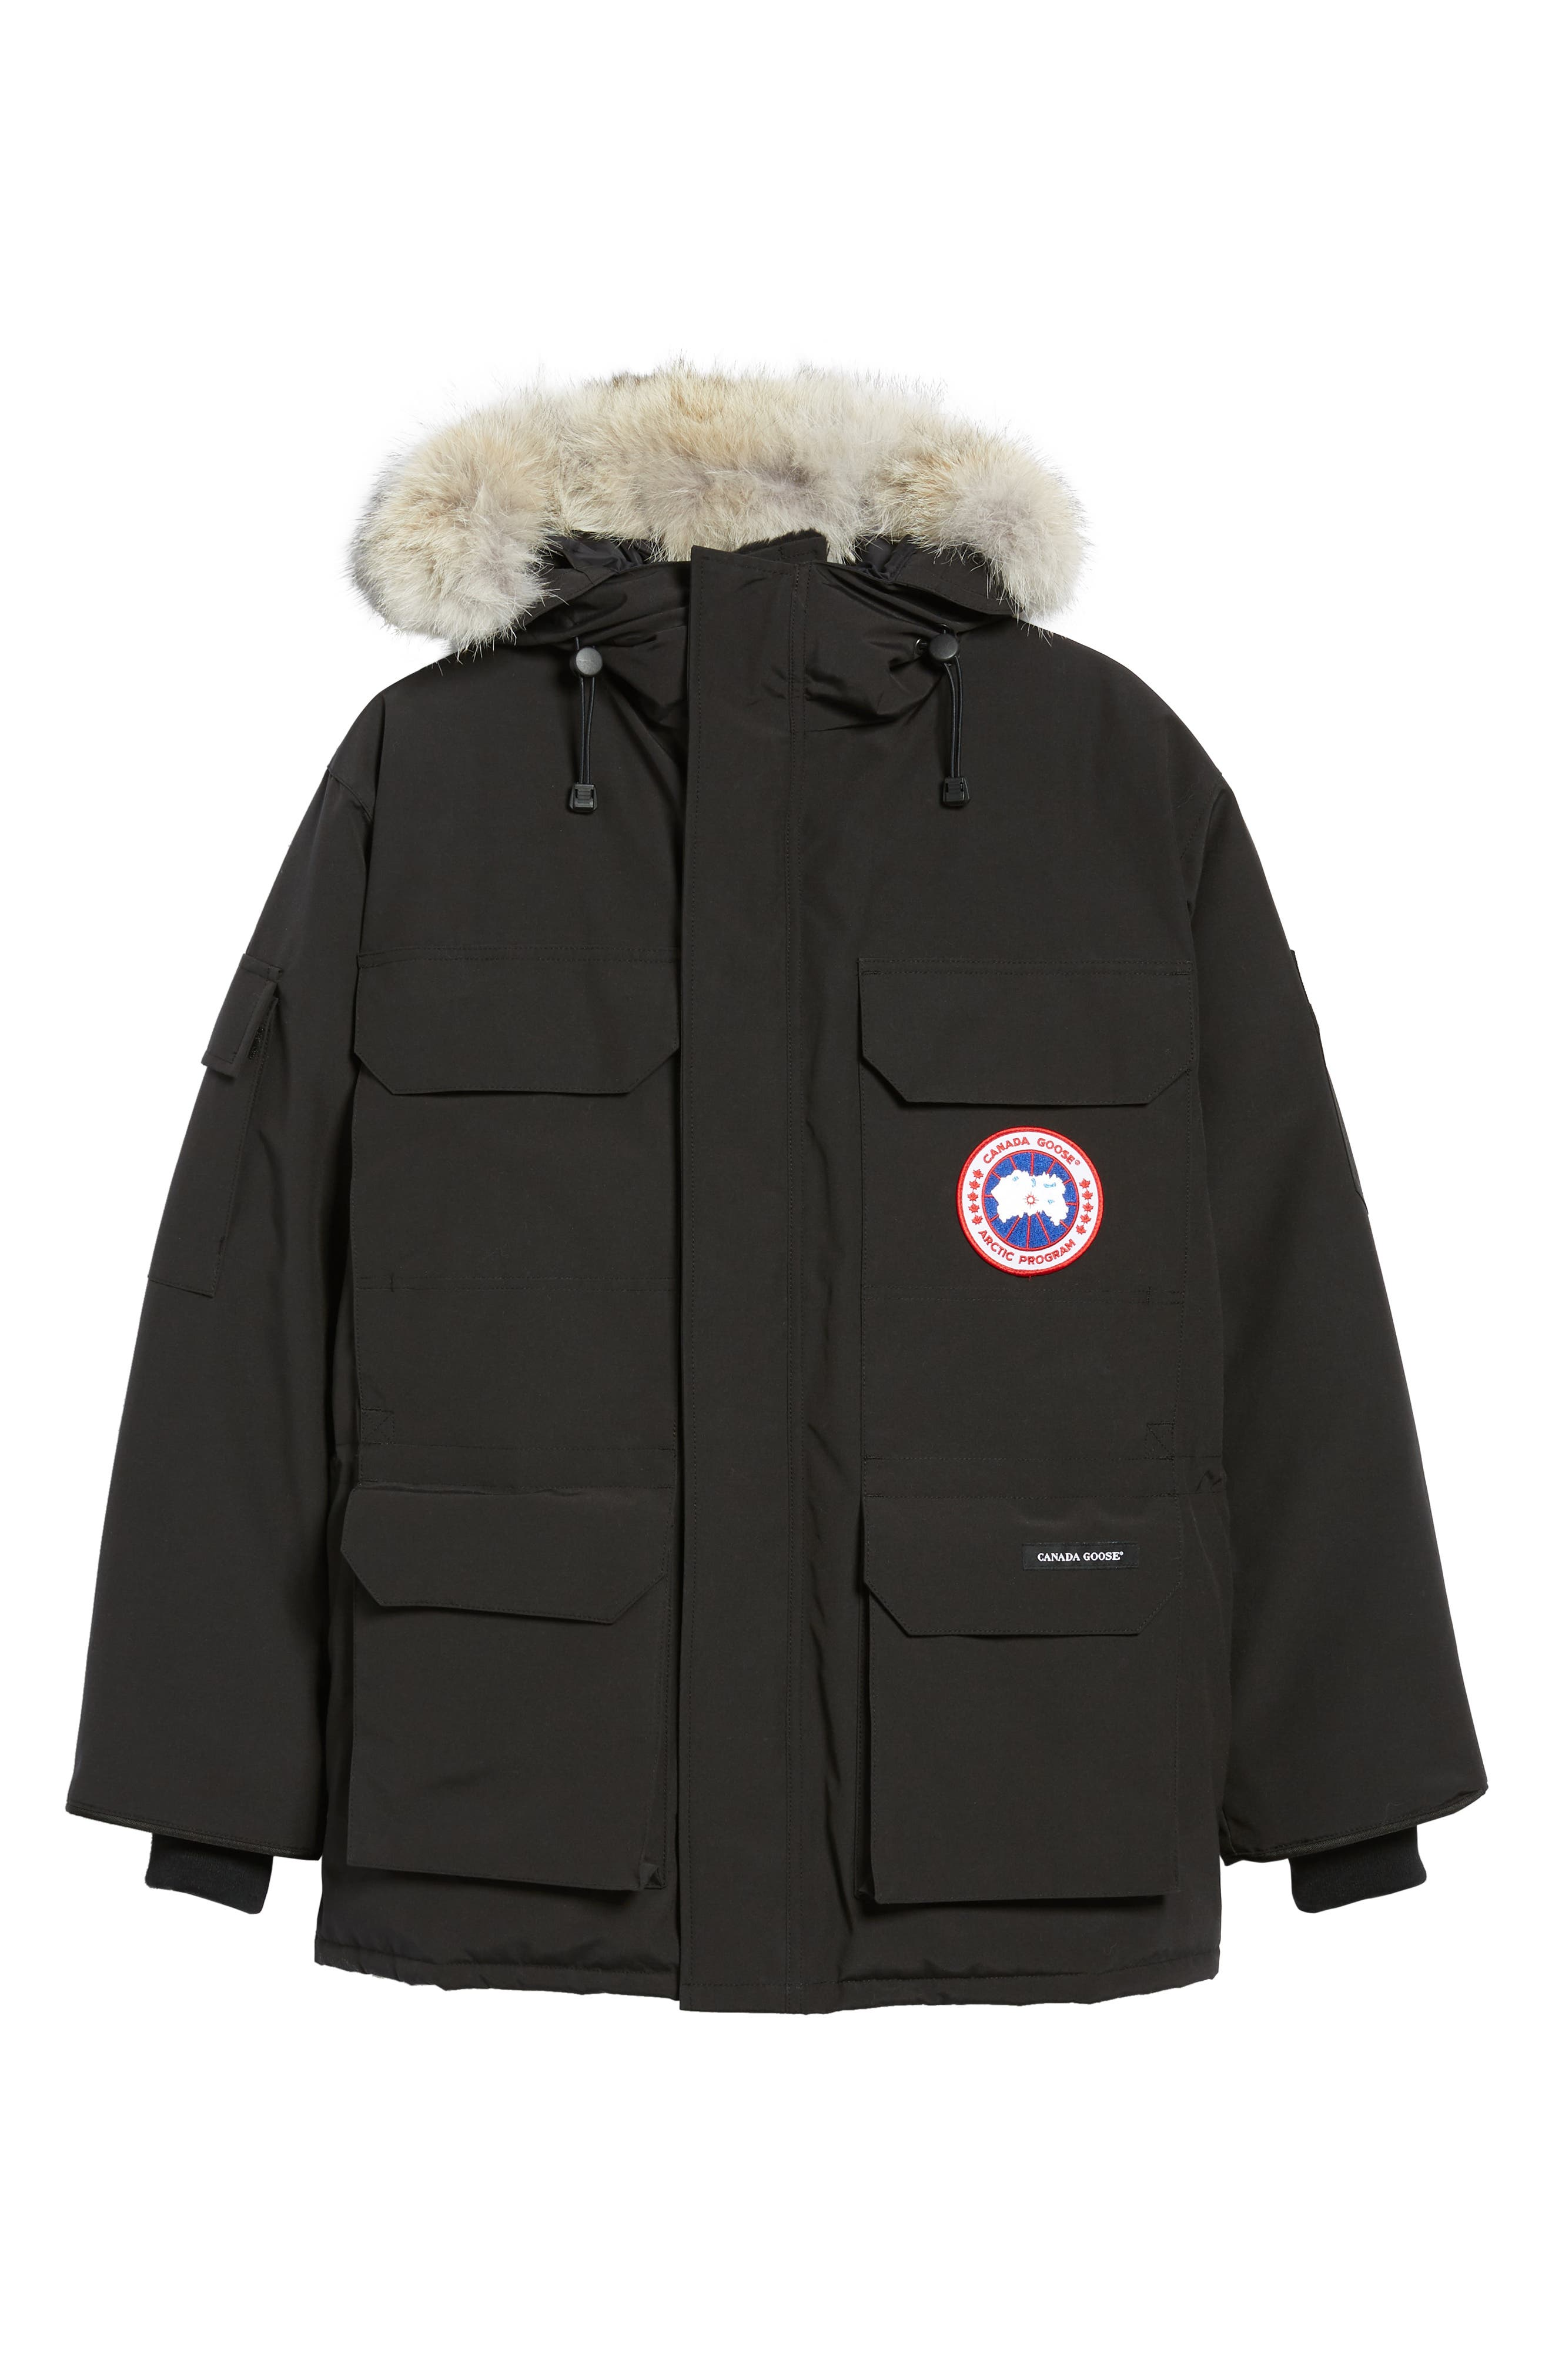 PBI Expedition Regular Fit Down Parka with Genuine Coyote Fur Trim,                             Alternate thumbnail 6, color,                             001